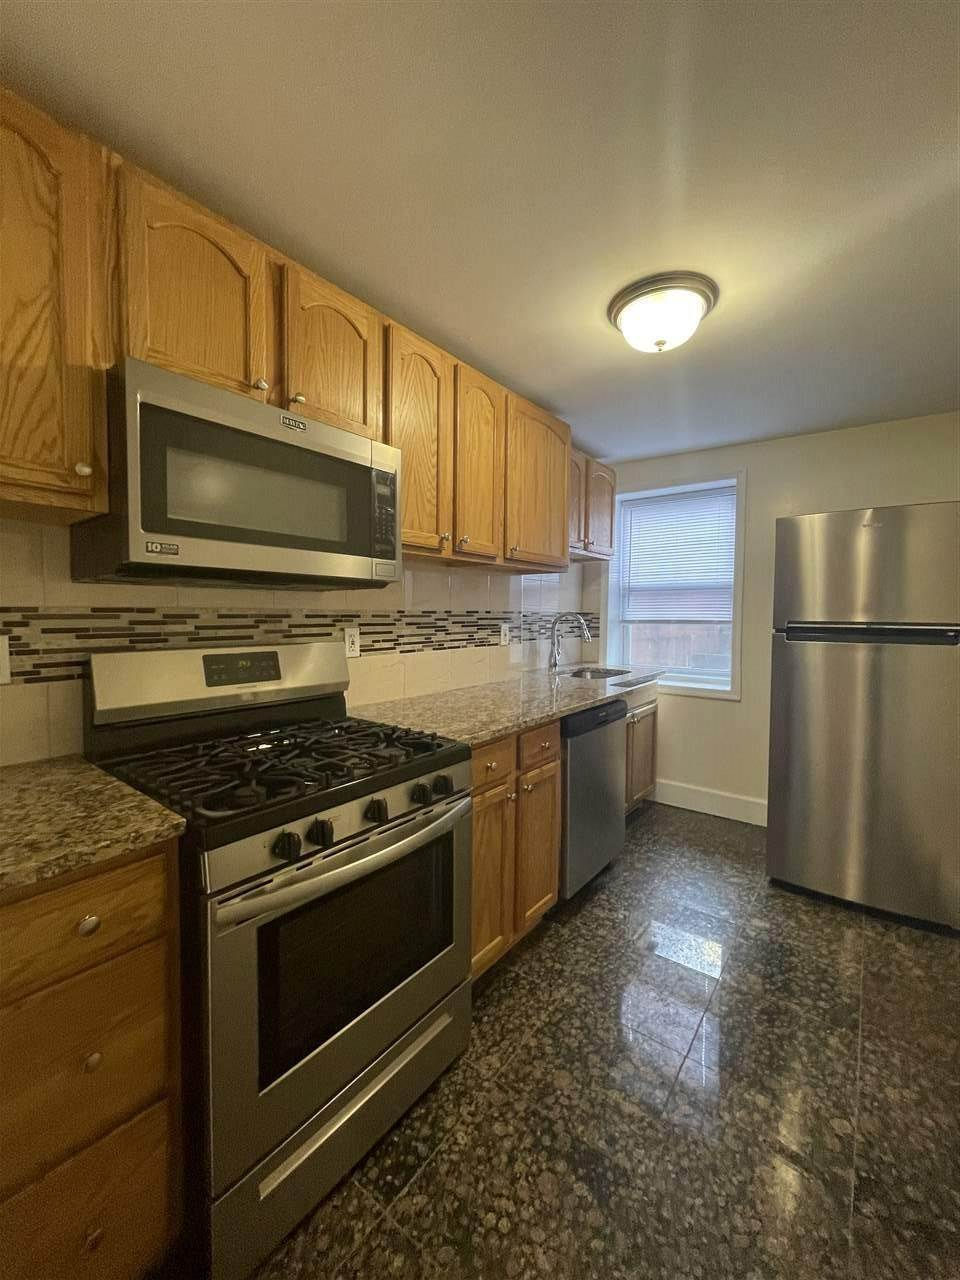 Single Family Home for Rent at 204 CHRISTOPHER COLUMBUS DRIVE #1 Jersey City, New Jersey, 07302 United States